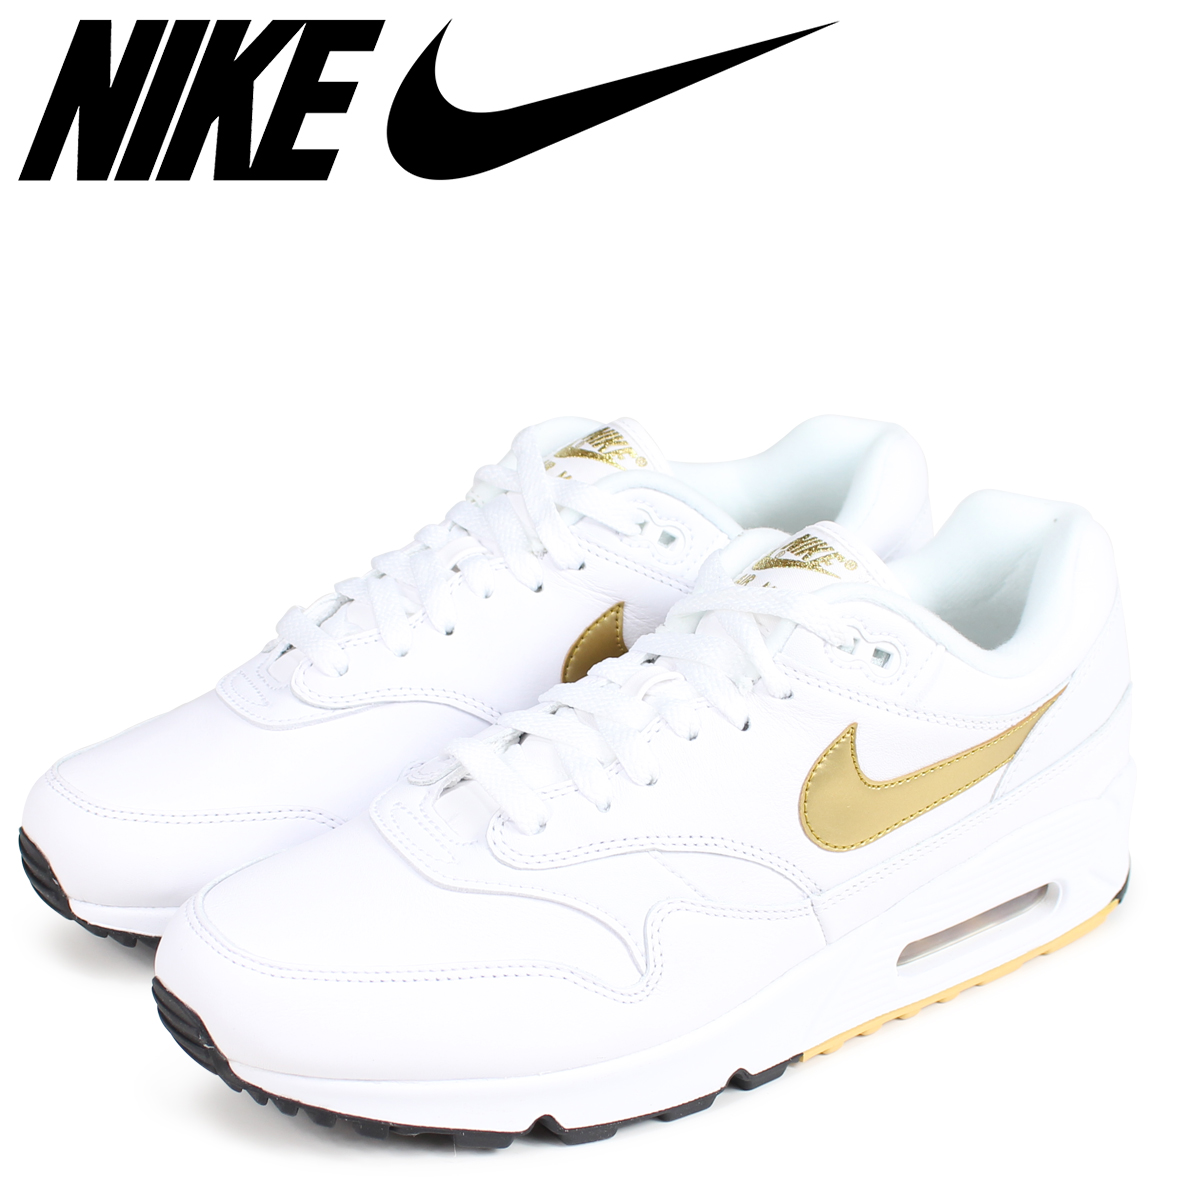 896acc5369c2e NIKE Kie Ney AMAX 90 1 sneakers men AIR MAX 90 1 AJ7695-102 white  load  planned Shinnyu load in reservation product 9 11 containing